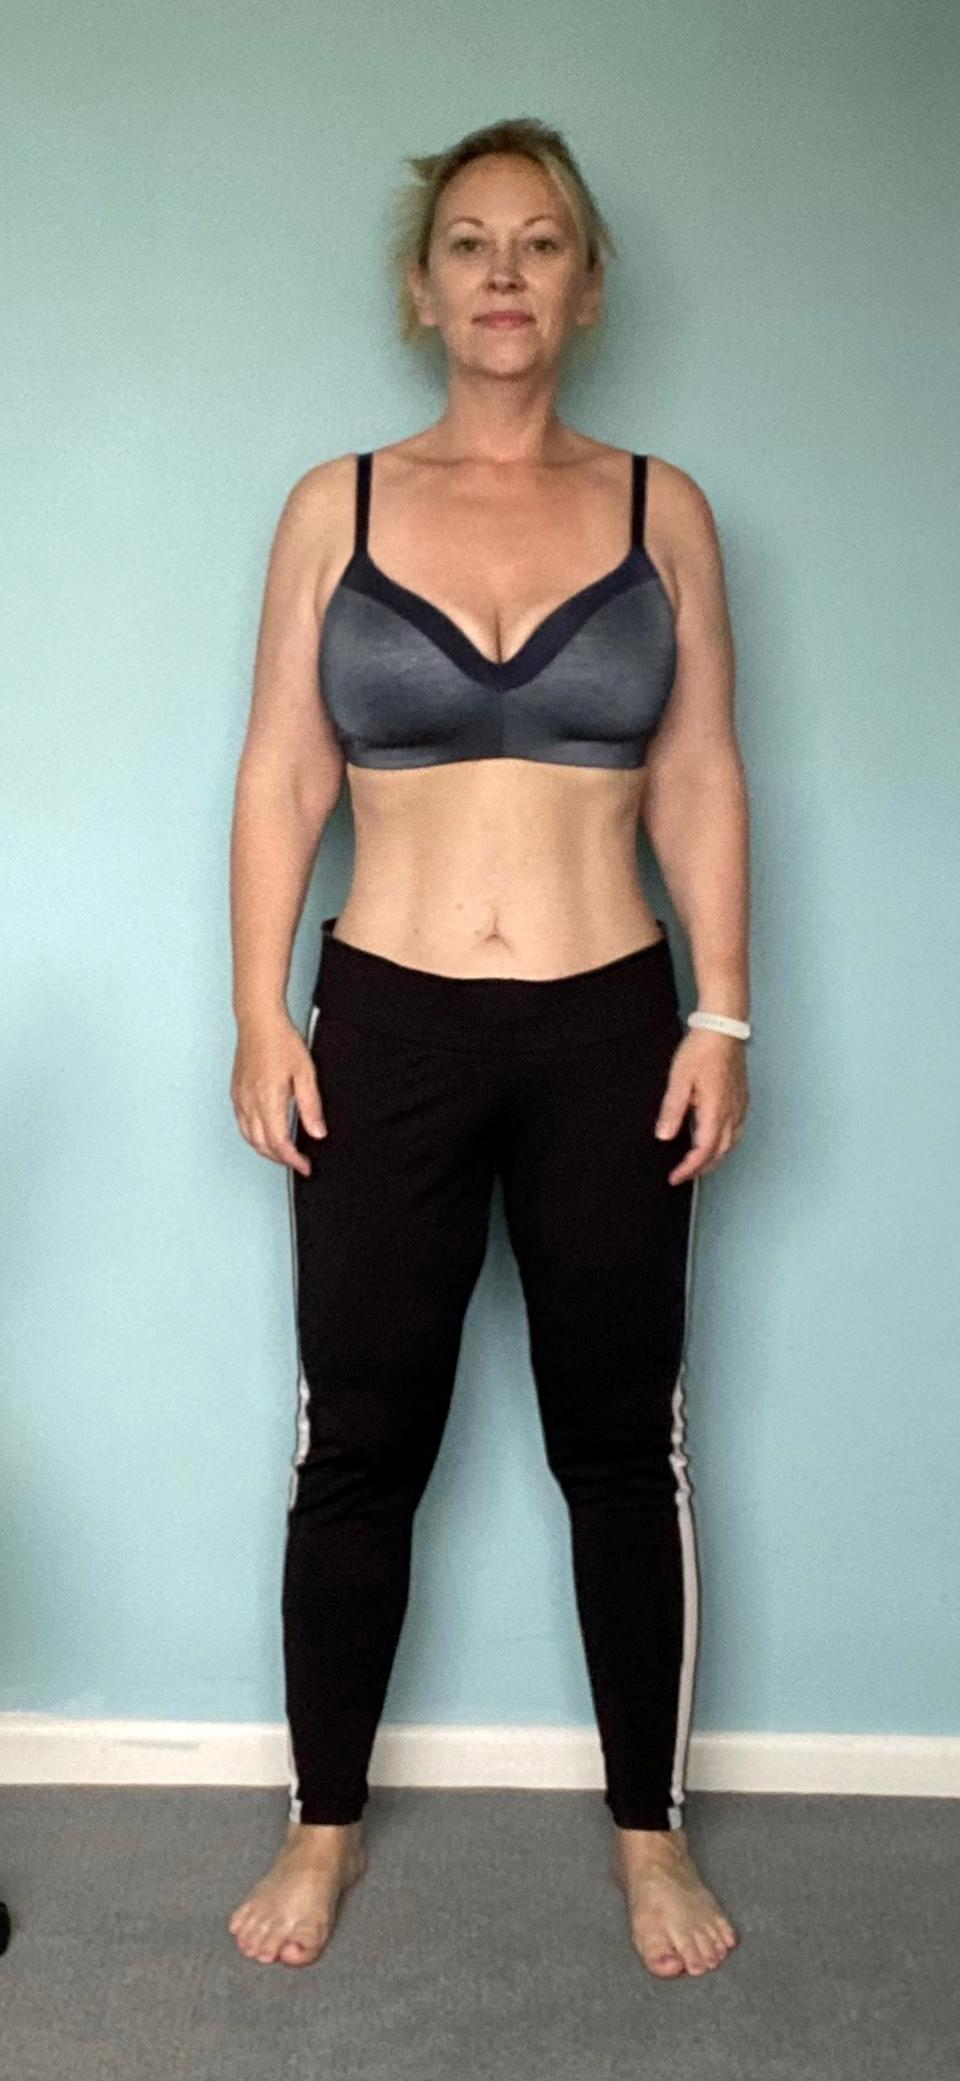 The 42-year-old wanted to be a good role model for her son and has since shed an impressive 5st 12lbs since October last year. (Caters)